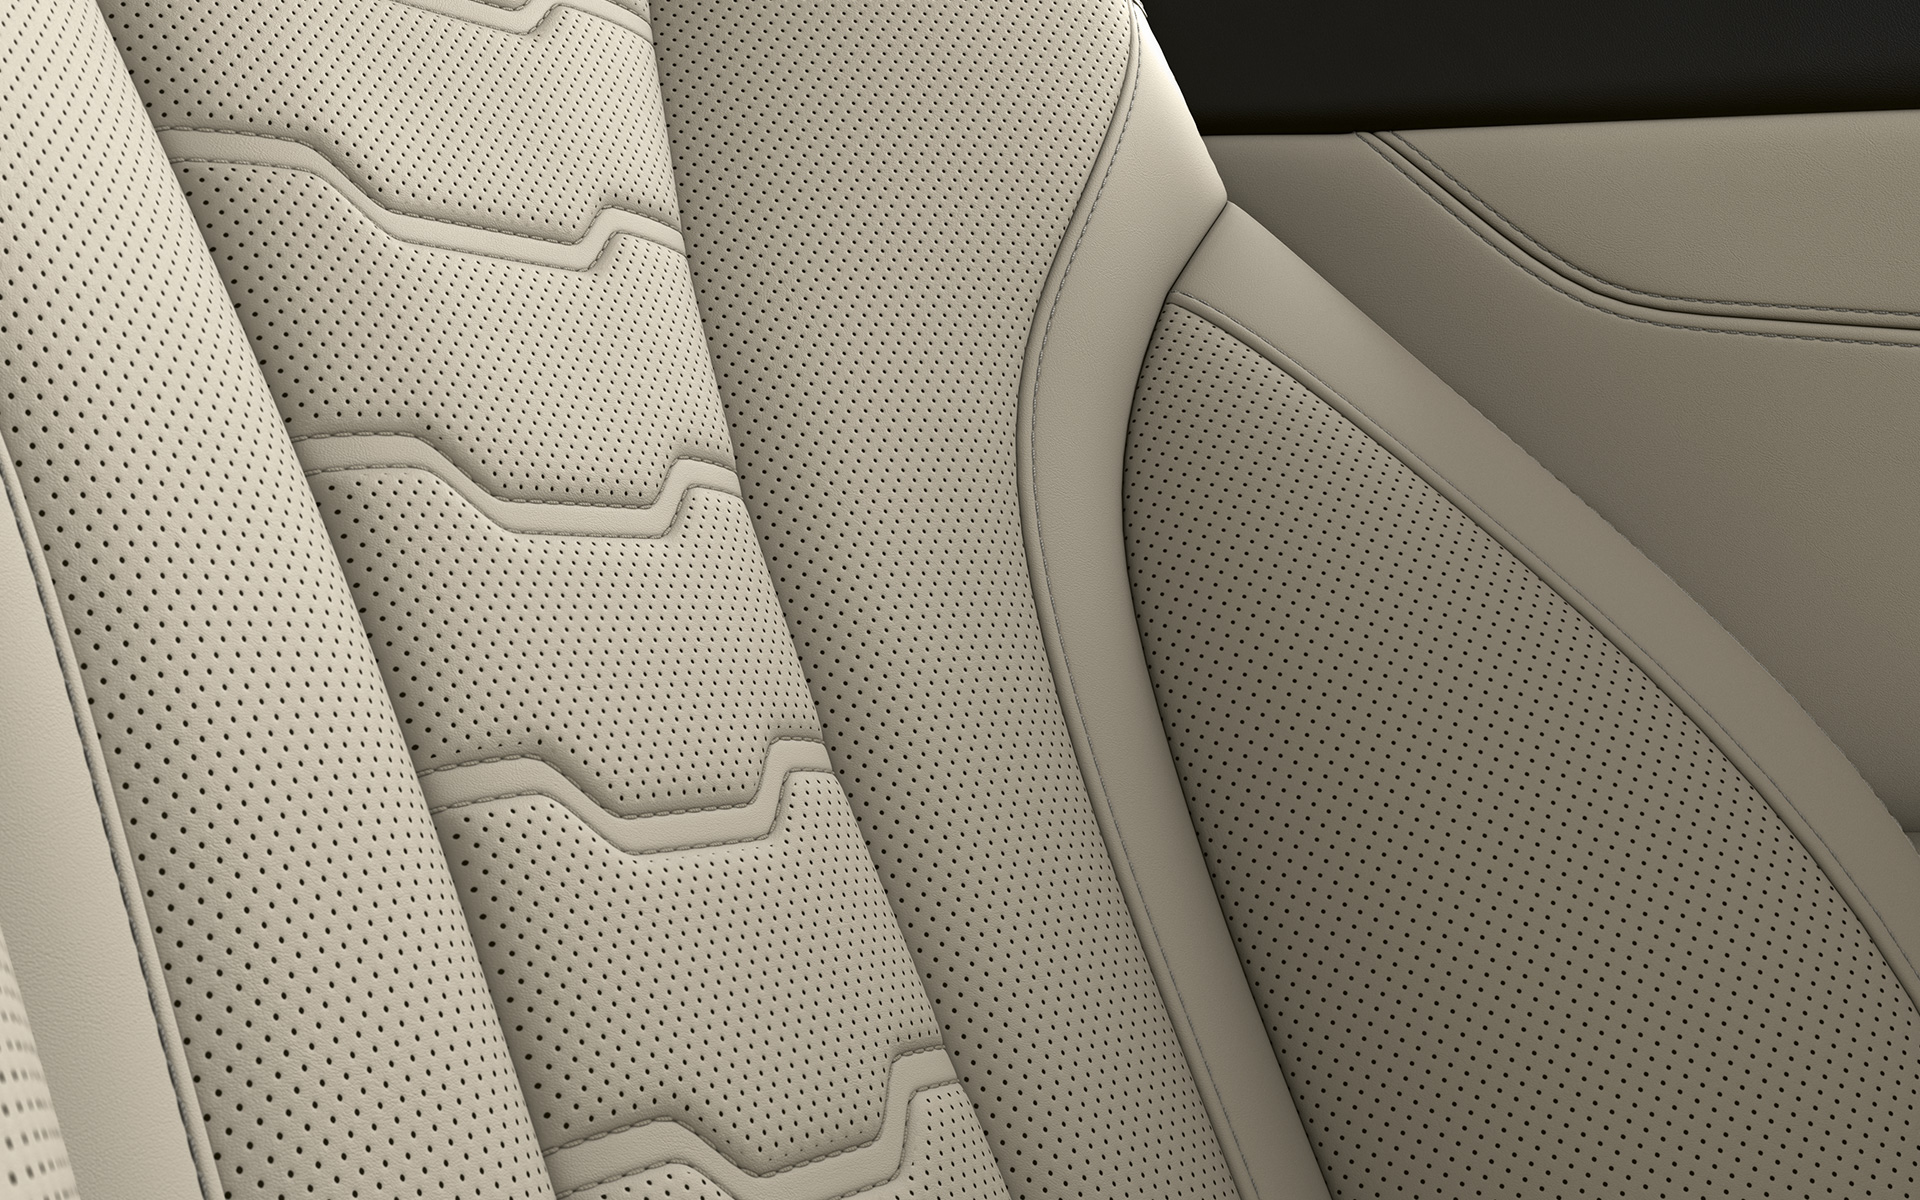 Close-up of the upholstery and stitching of the BMW 8 Series Coupé.